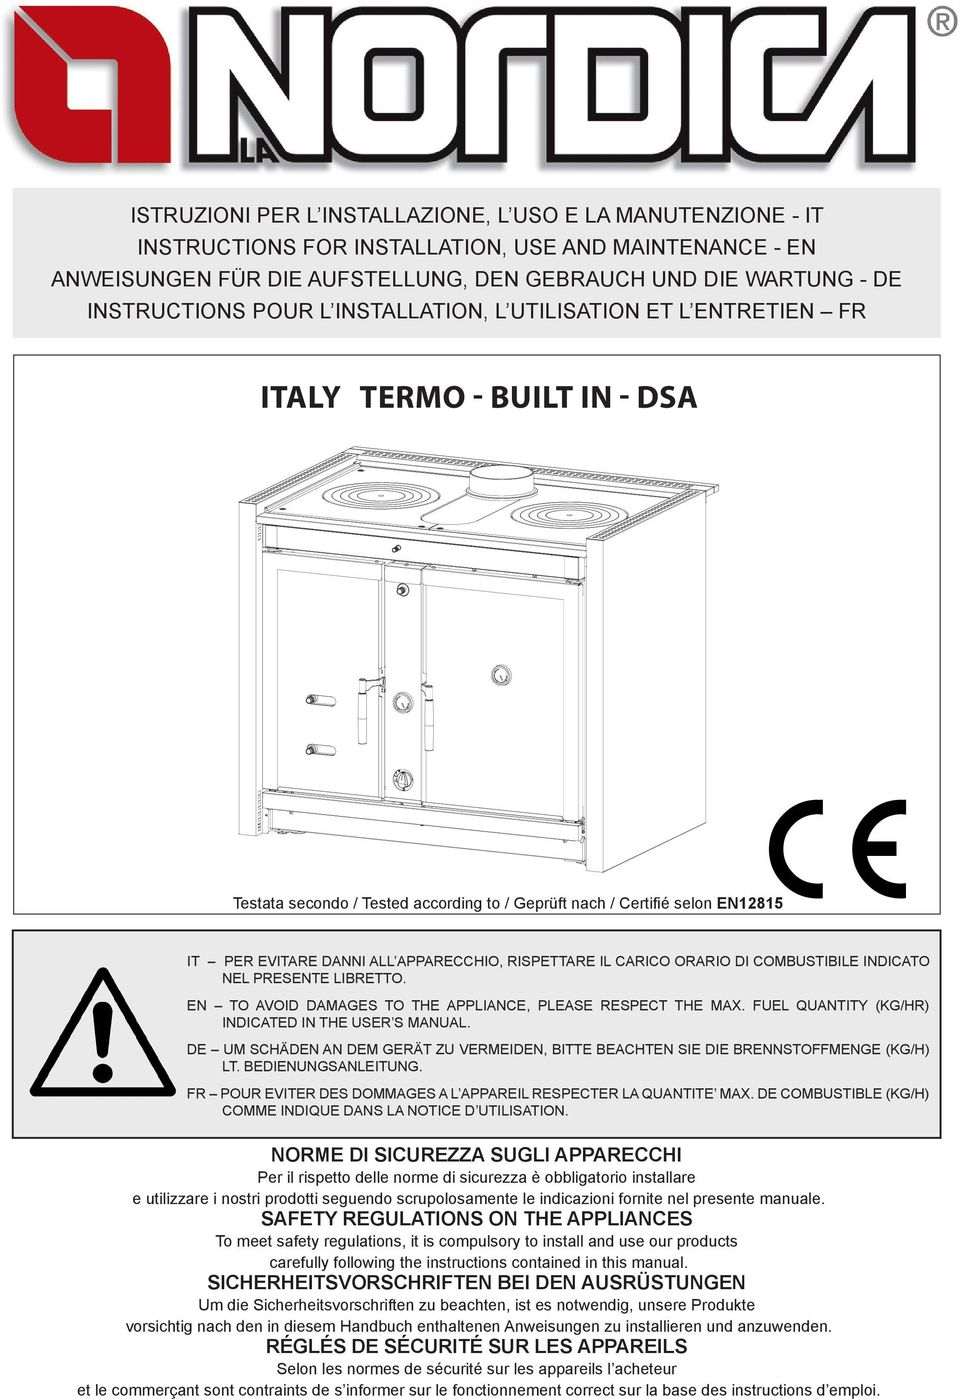 RISPETTARE IL CARICO ORARIO DI COMBUSTIBILE INDICATO NEL PRESENTE LIBRETTO. EN TO AVOID DAMAGES TO THE APPLIANCE, PLEASE RESPECT THE MAX. FUEL QUANTITY (KG/HR) INDICATED IN THE USER S MANUAL.